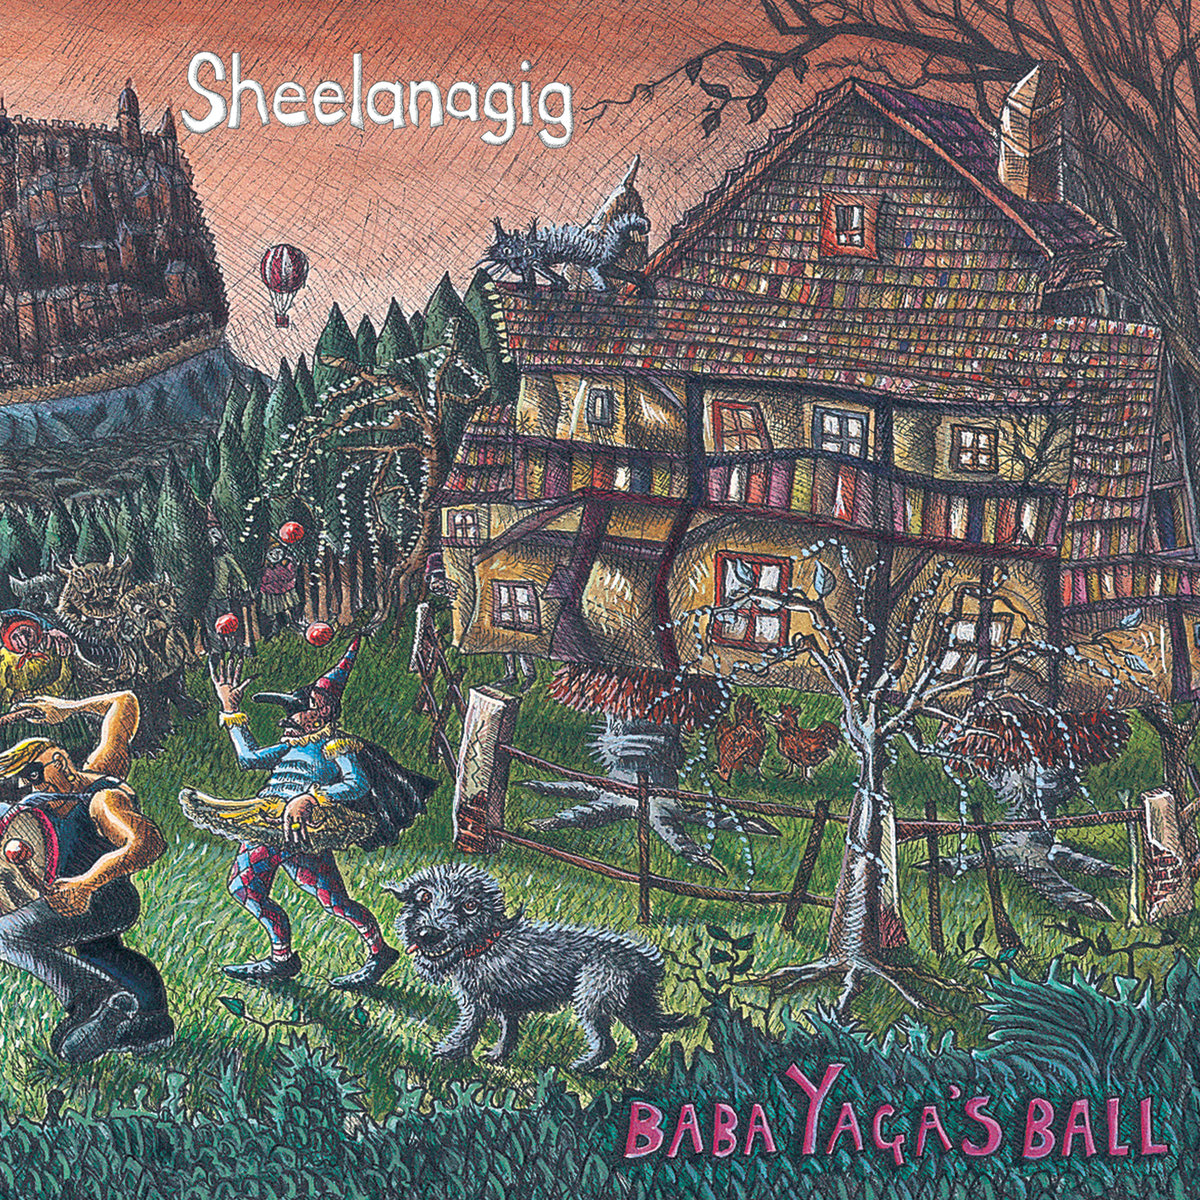 Artist:  Sheelanagig   Title:  Baba Yaga's Ball   Credit:  Producer, Recording, Mixing    Year:  2007